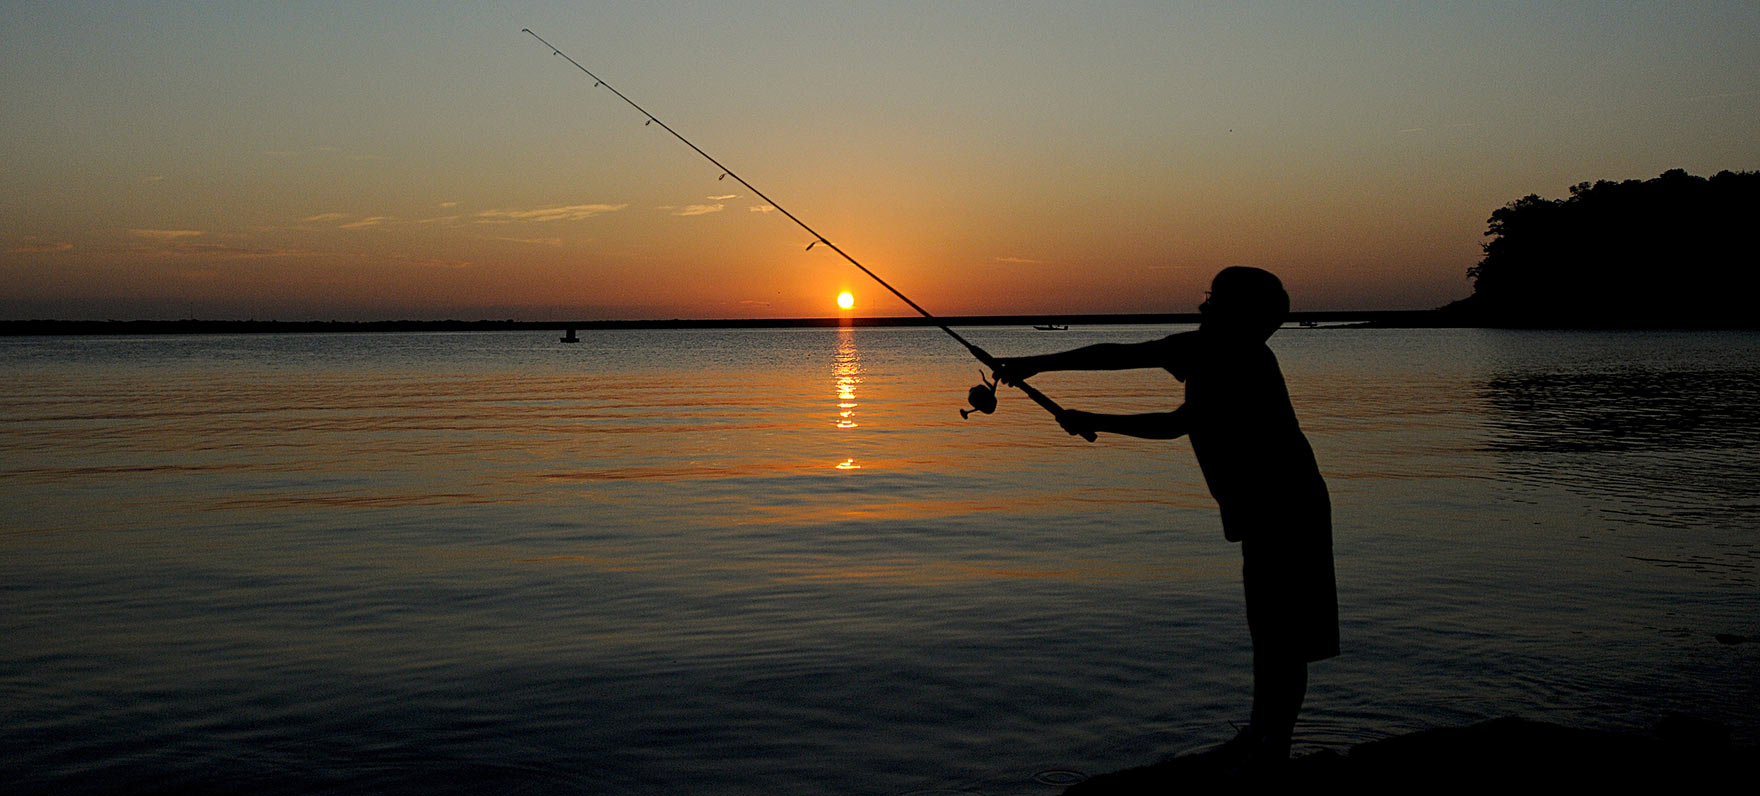 Eisenhower state park texas parks wildlife department for Fishing spots in dallas